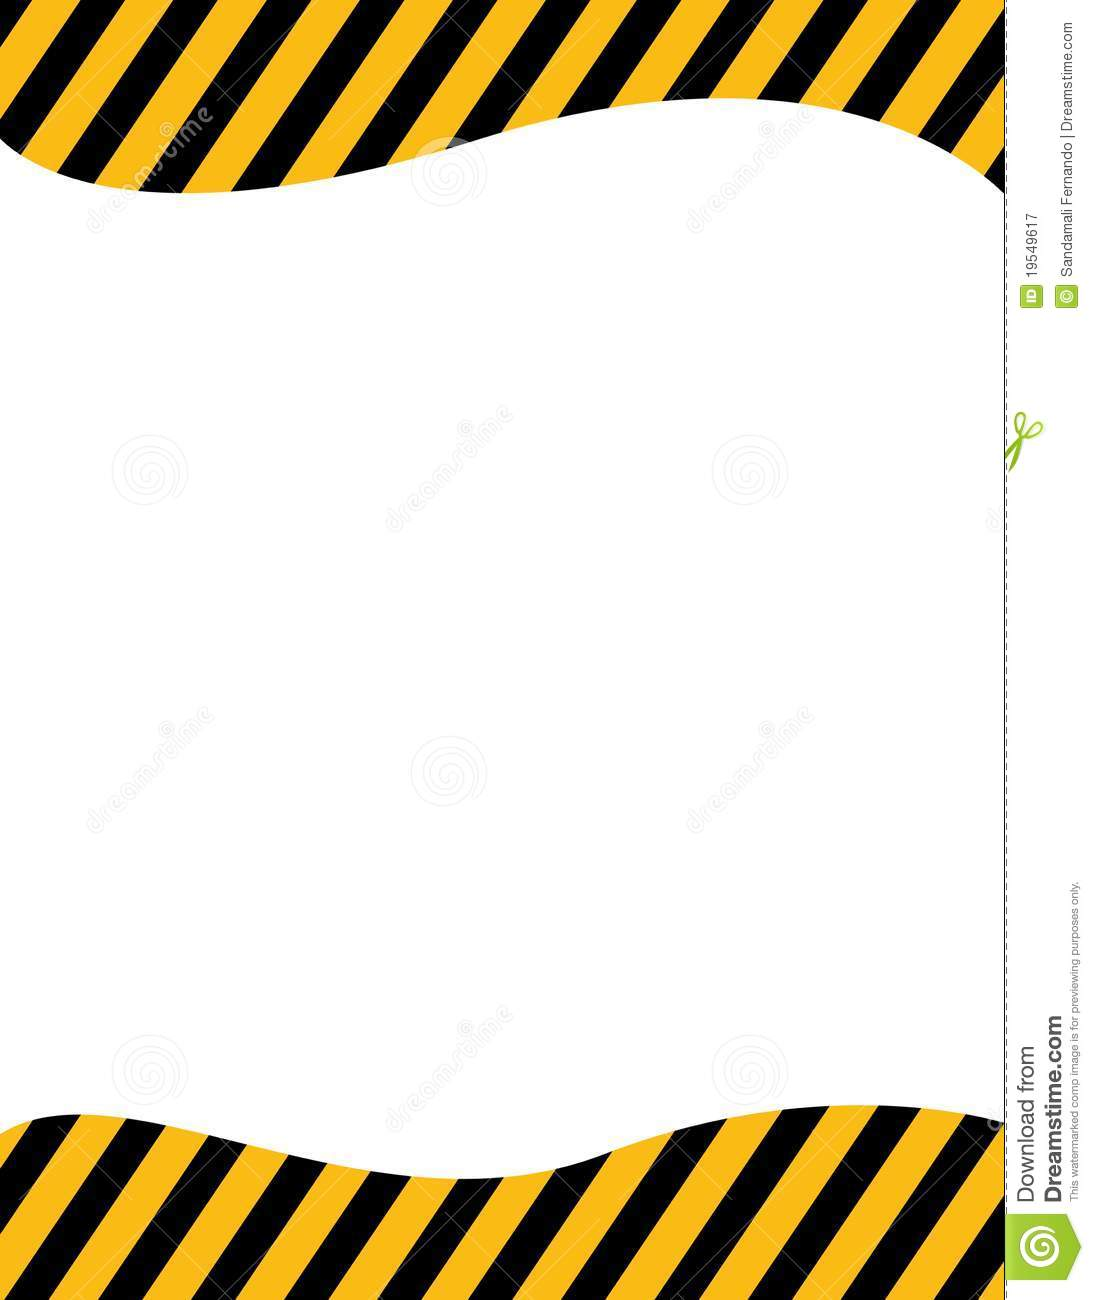 Border Frame With Black And Yellow Stripe On White Background.